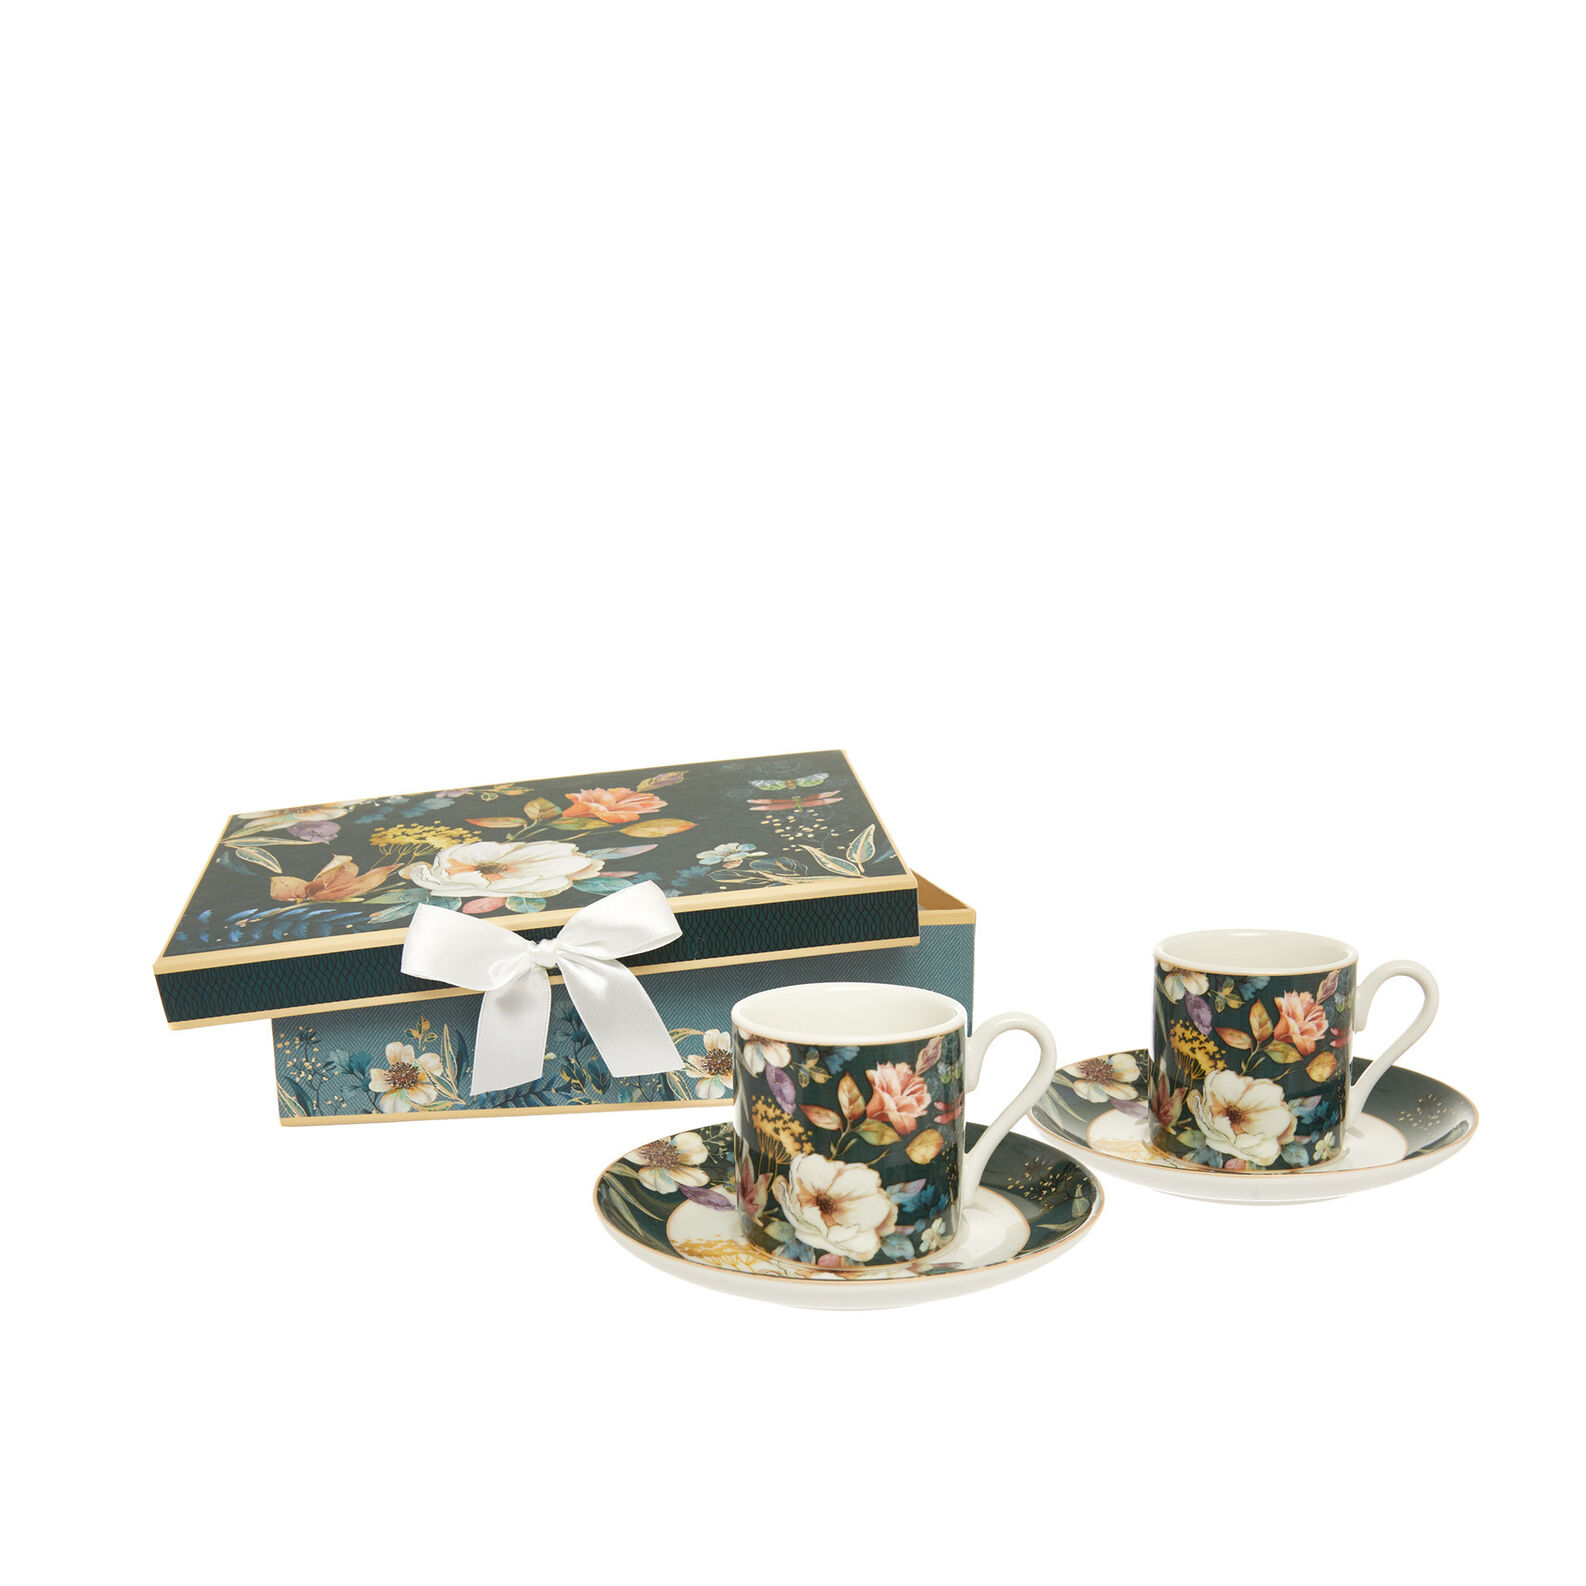 Set 2 tazze da caffè new bone china motivo floreale